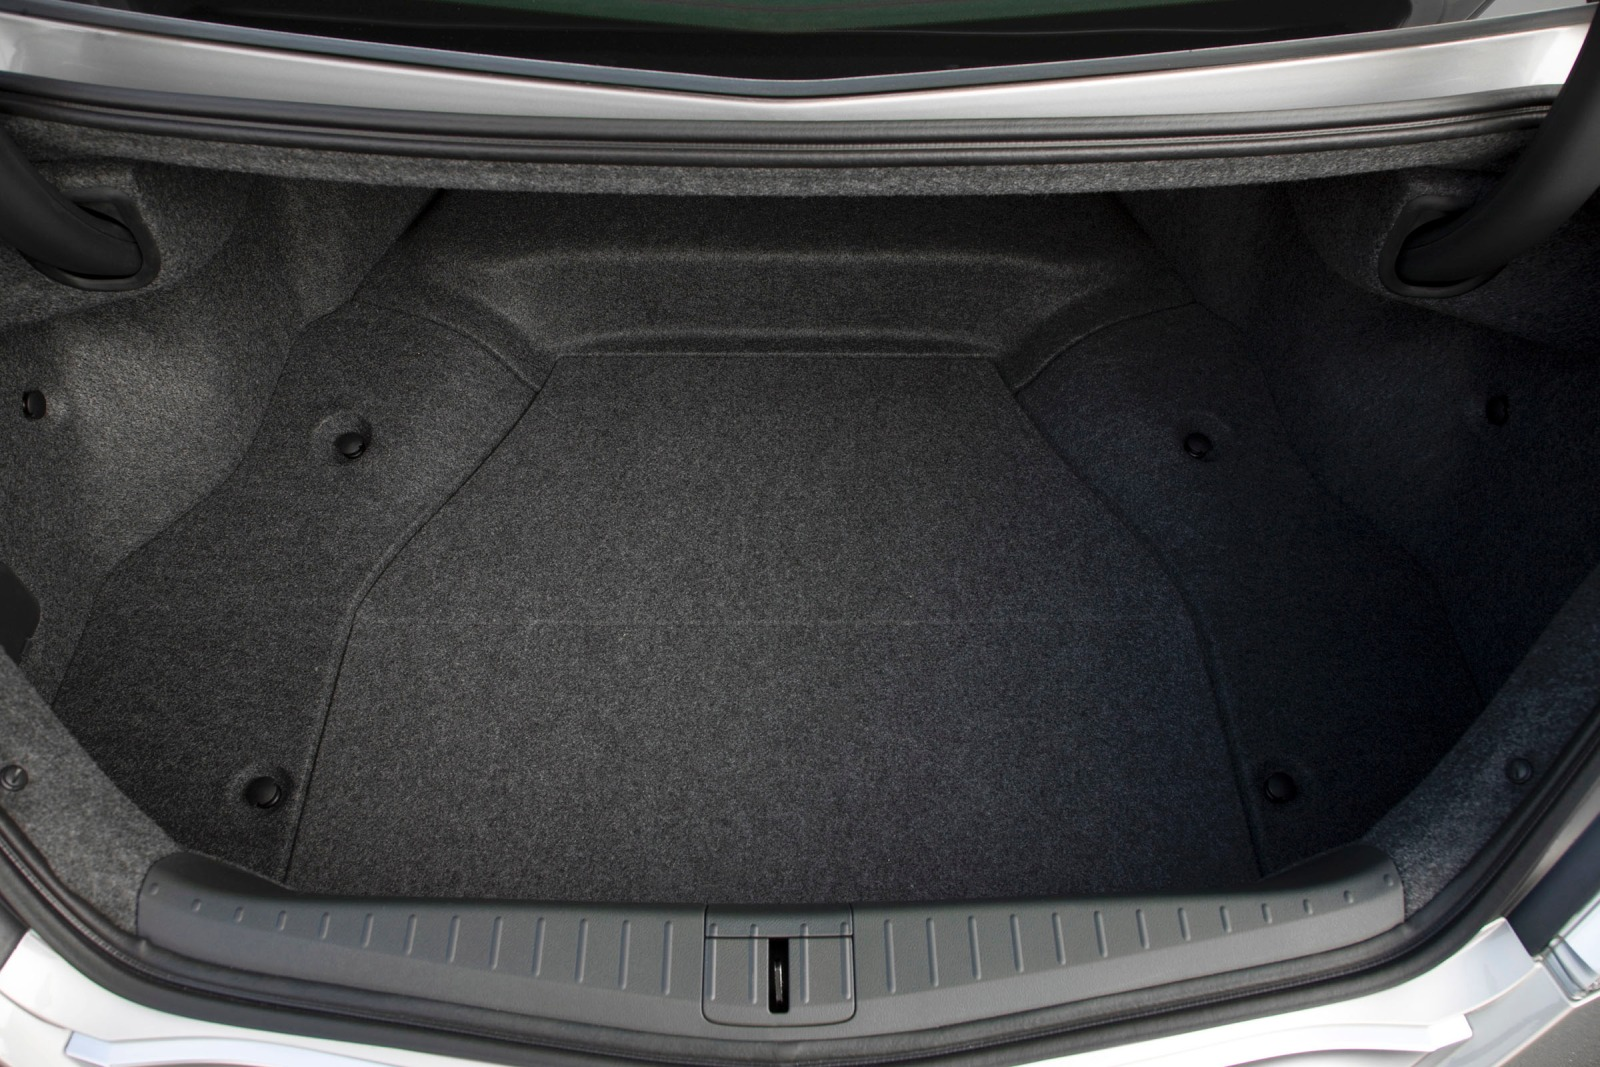 2011 Acura TL Sedan Cargo interior #3